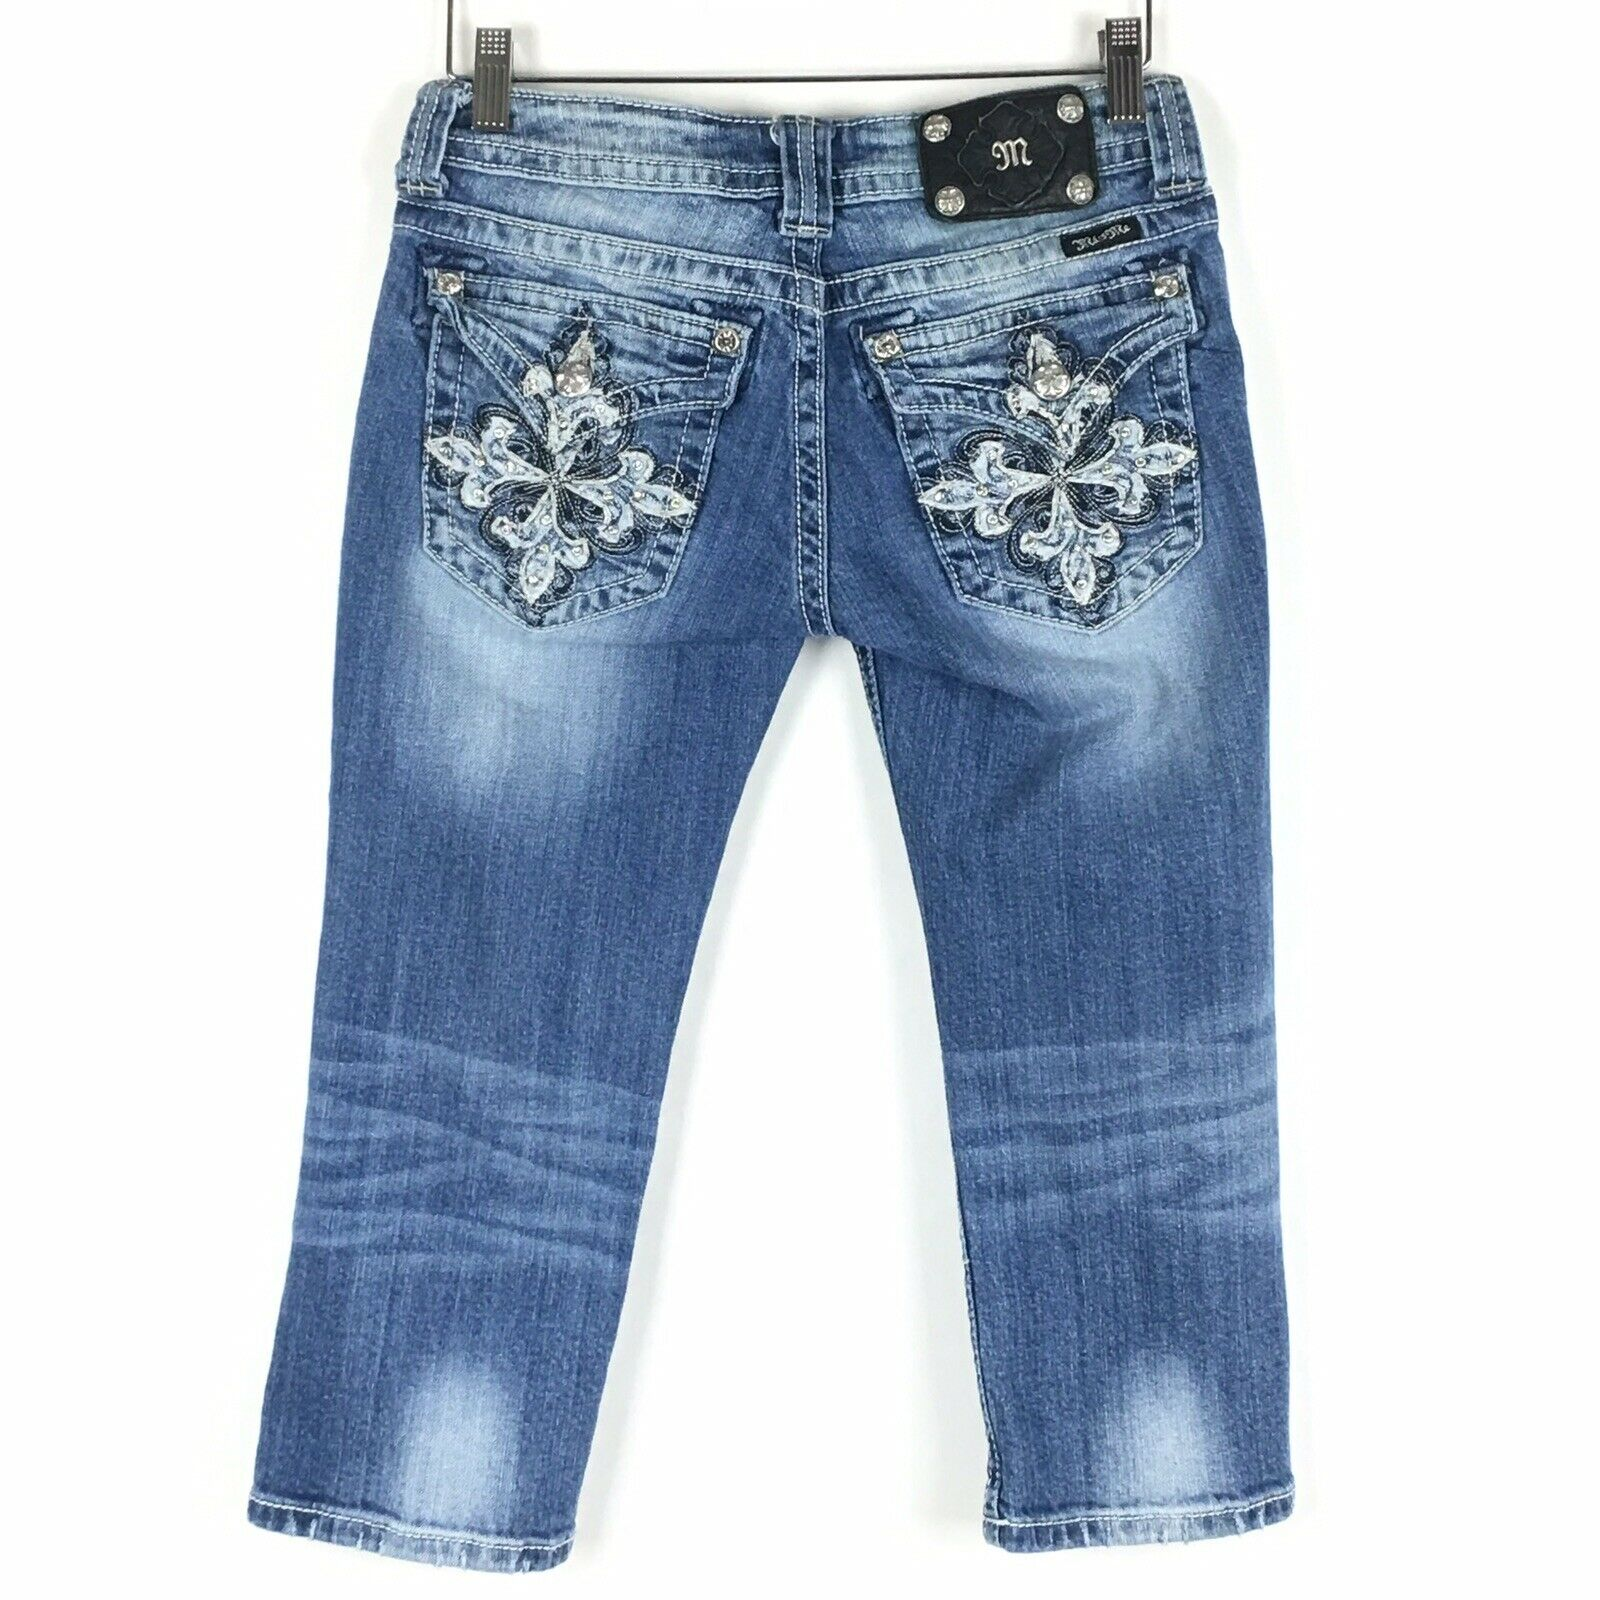 Miss Me Capri Jeans 27 Rhinestone Embroidered bluee Women Distressed Hand Sanding